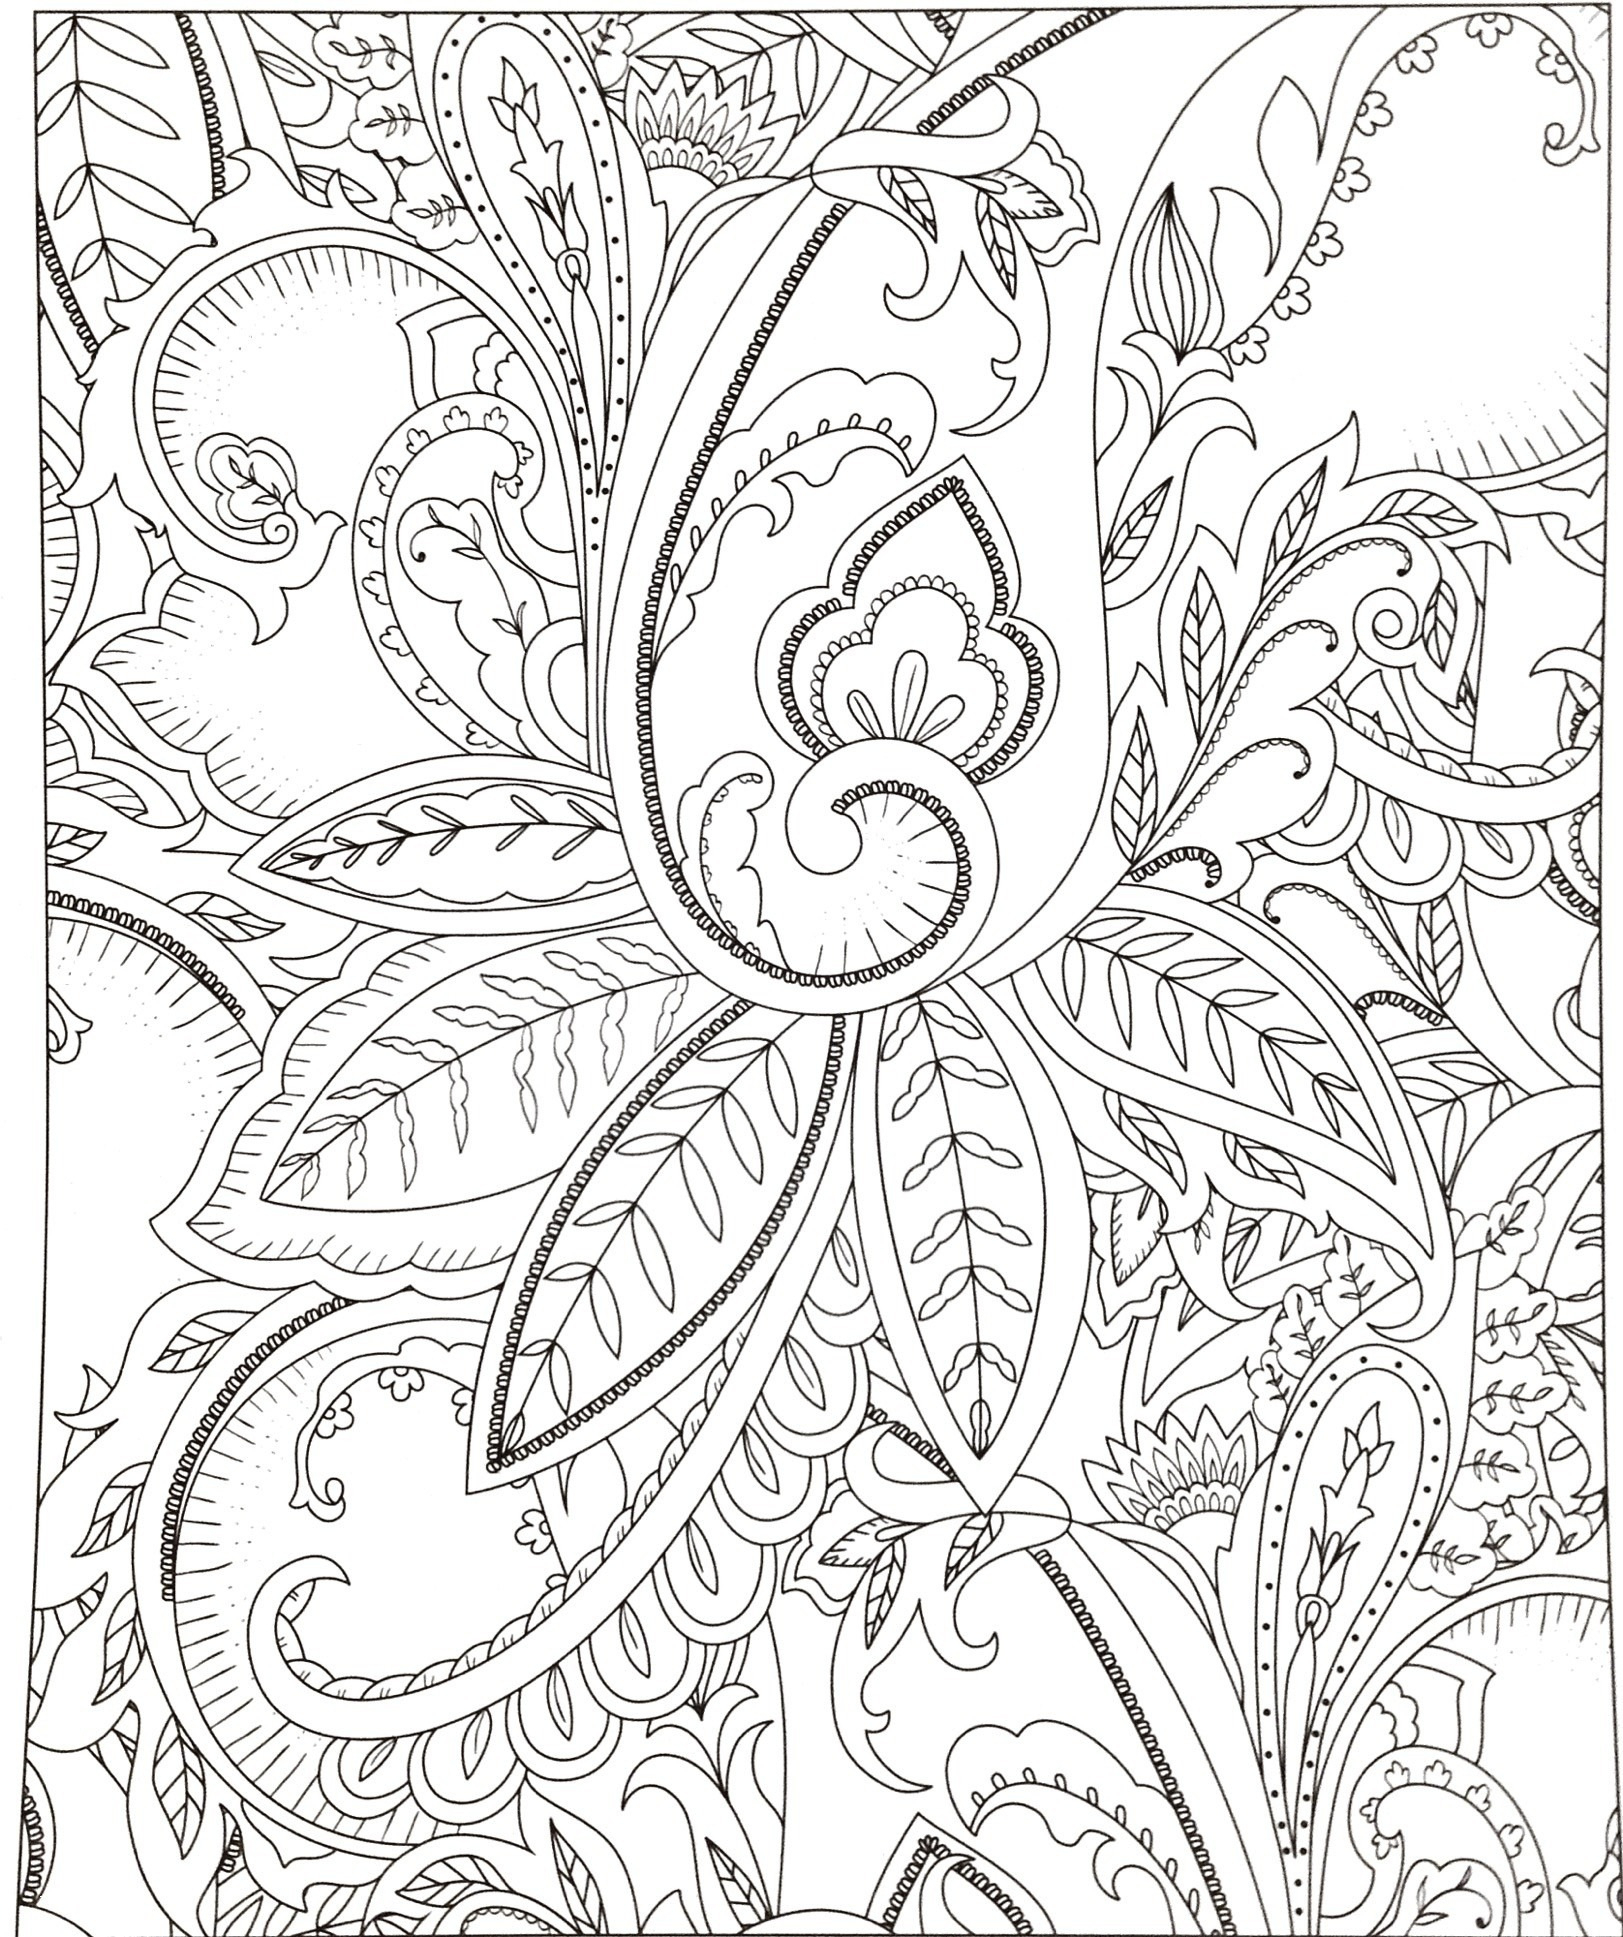 Psychedelic Coloring Pages  Printable 7n - To print for your project